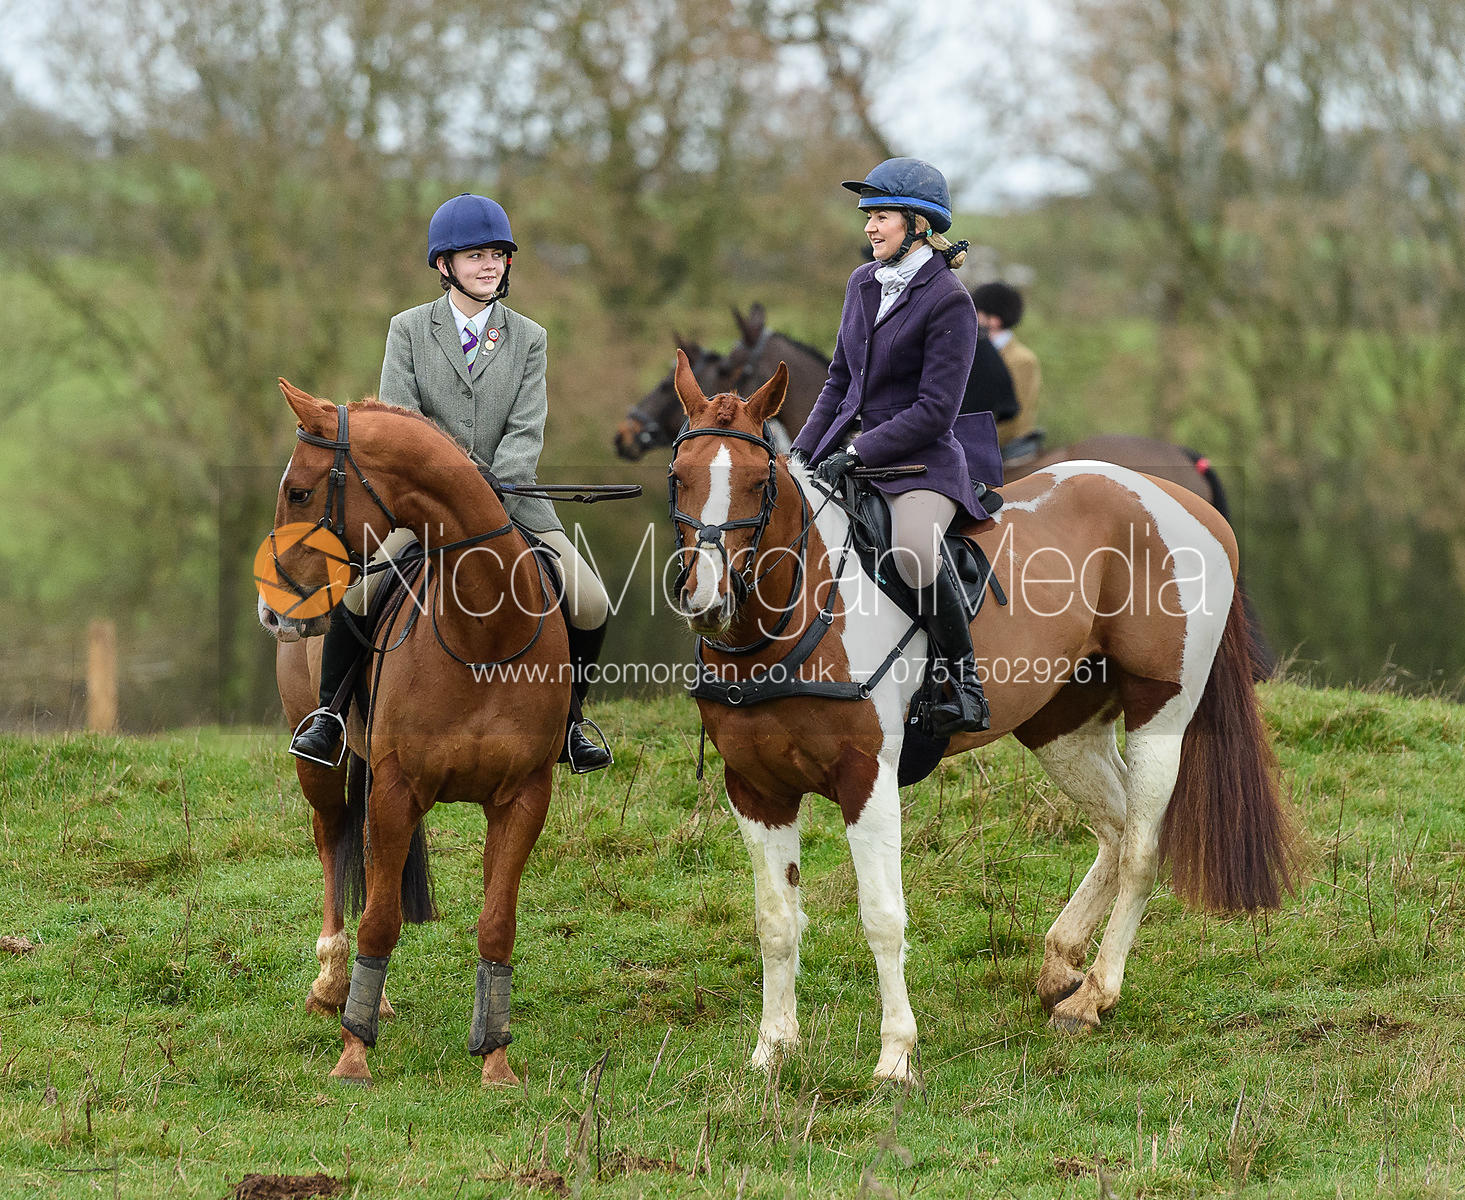 Lizzie Westropp, Amber Hoskins at Goadby Marwood 11/1